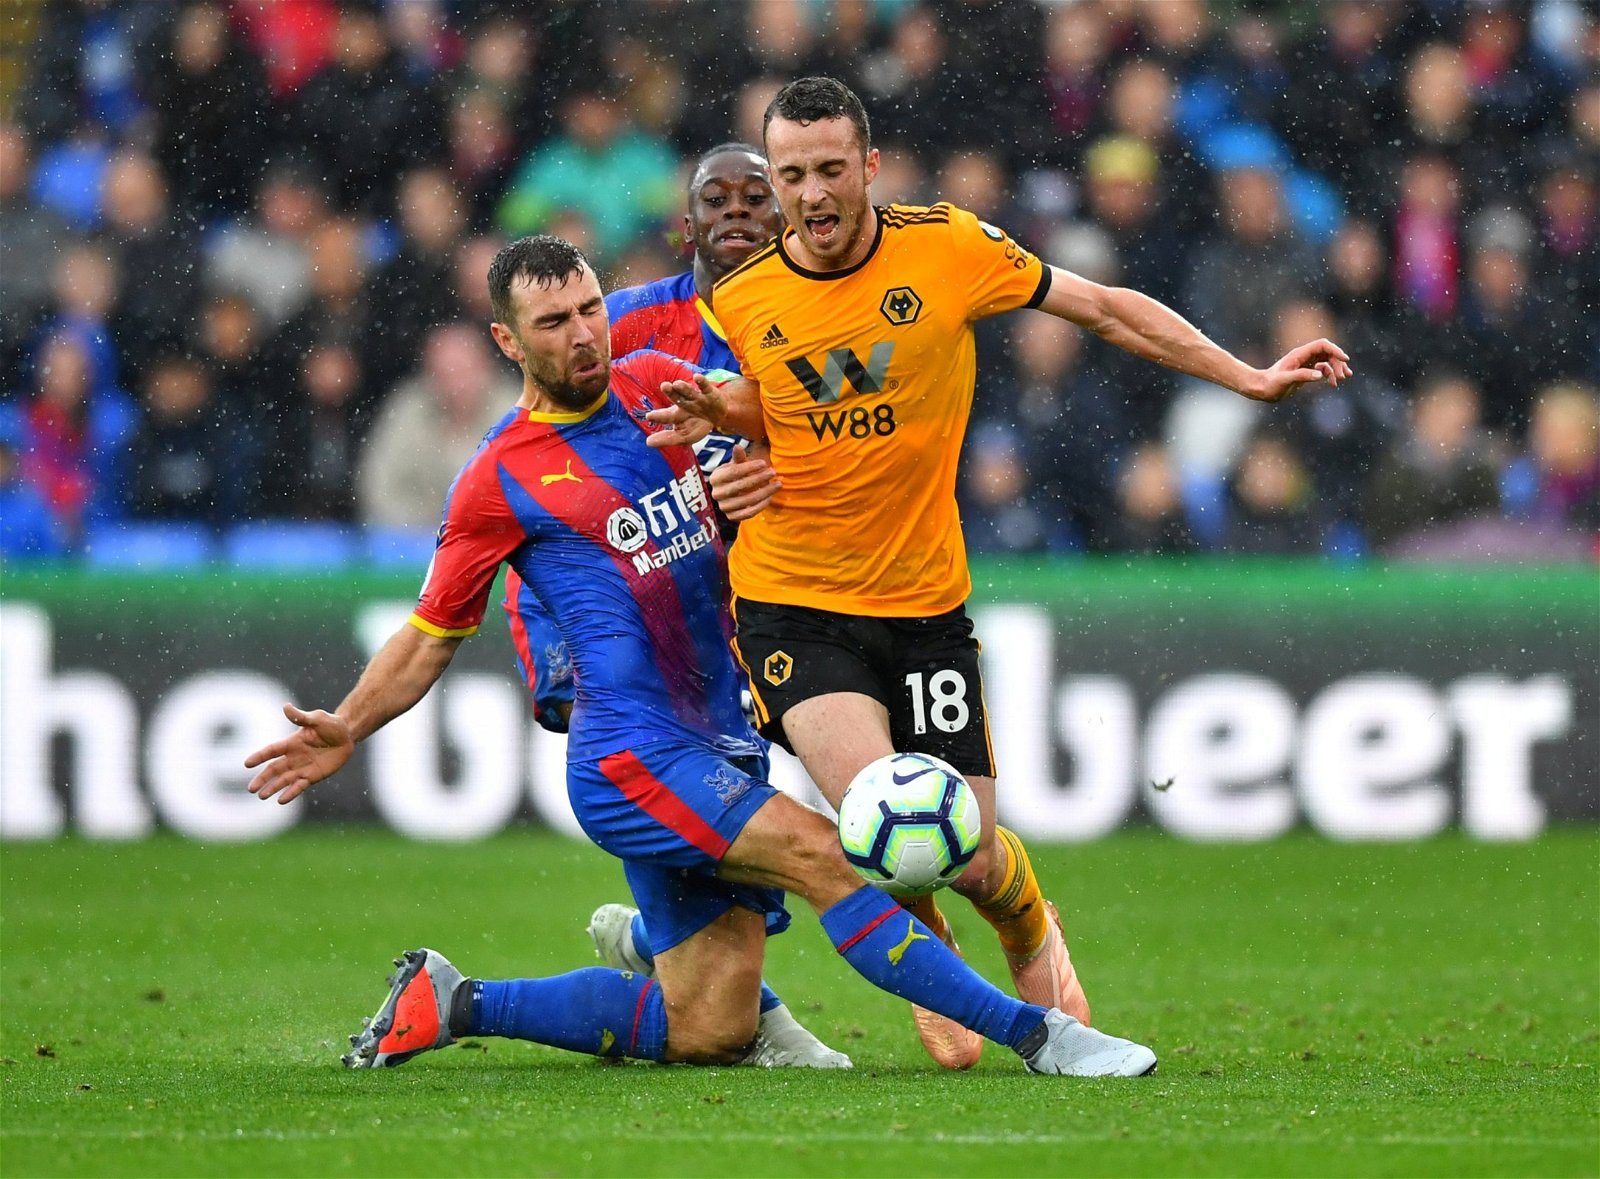 Diogo Jota is fouled